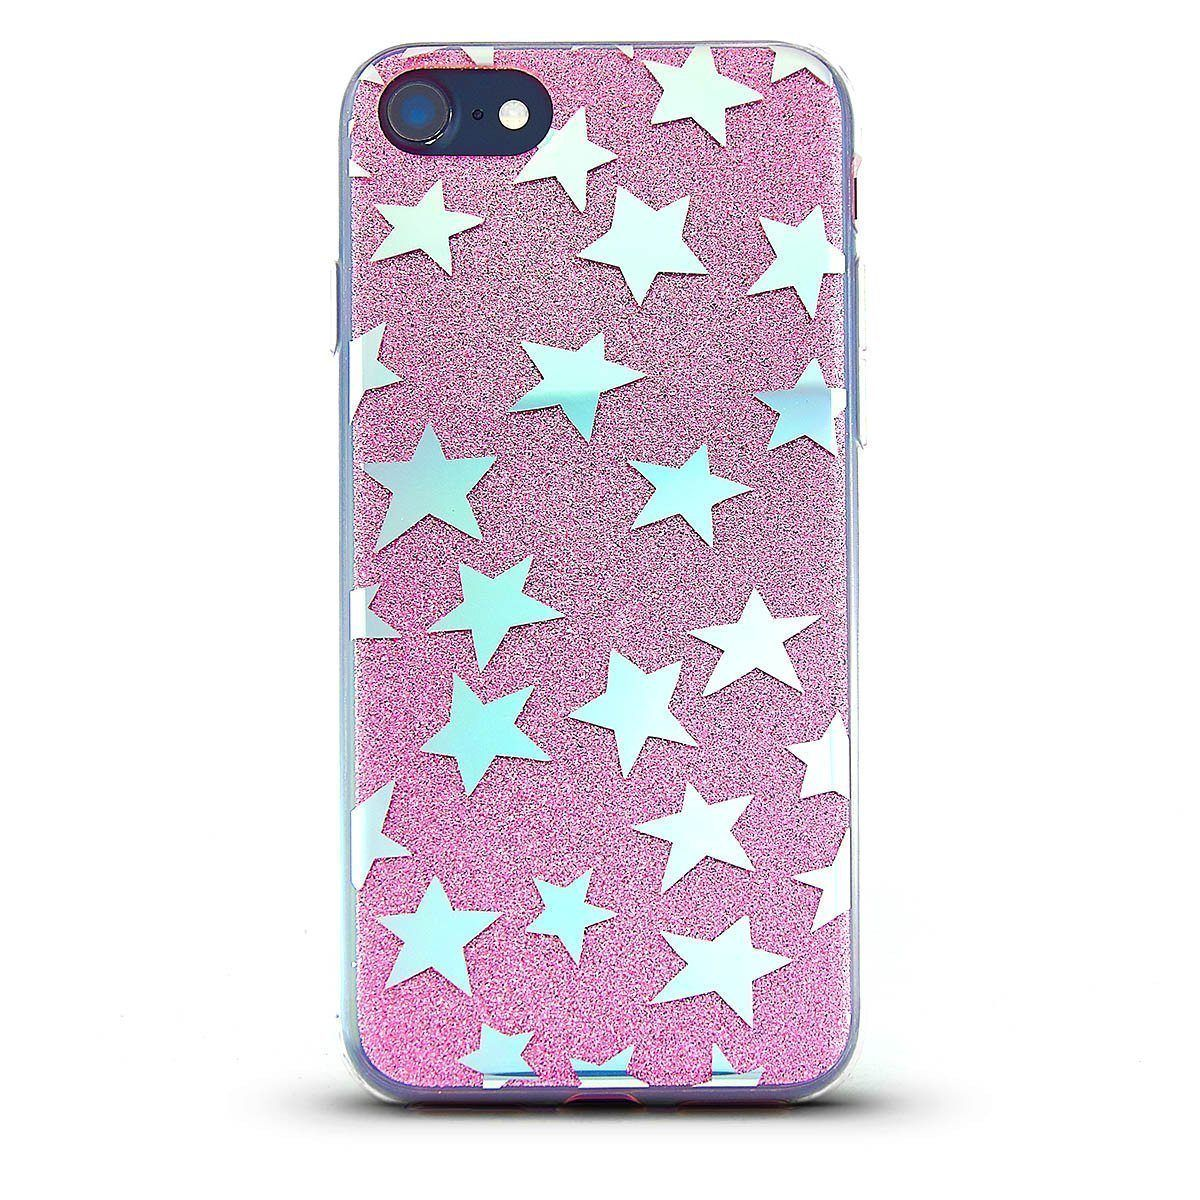 Sparkle Case for iPhone 7 /8 - Pink Star